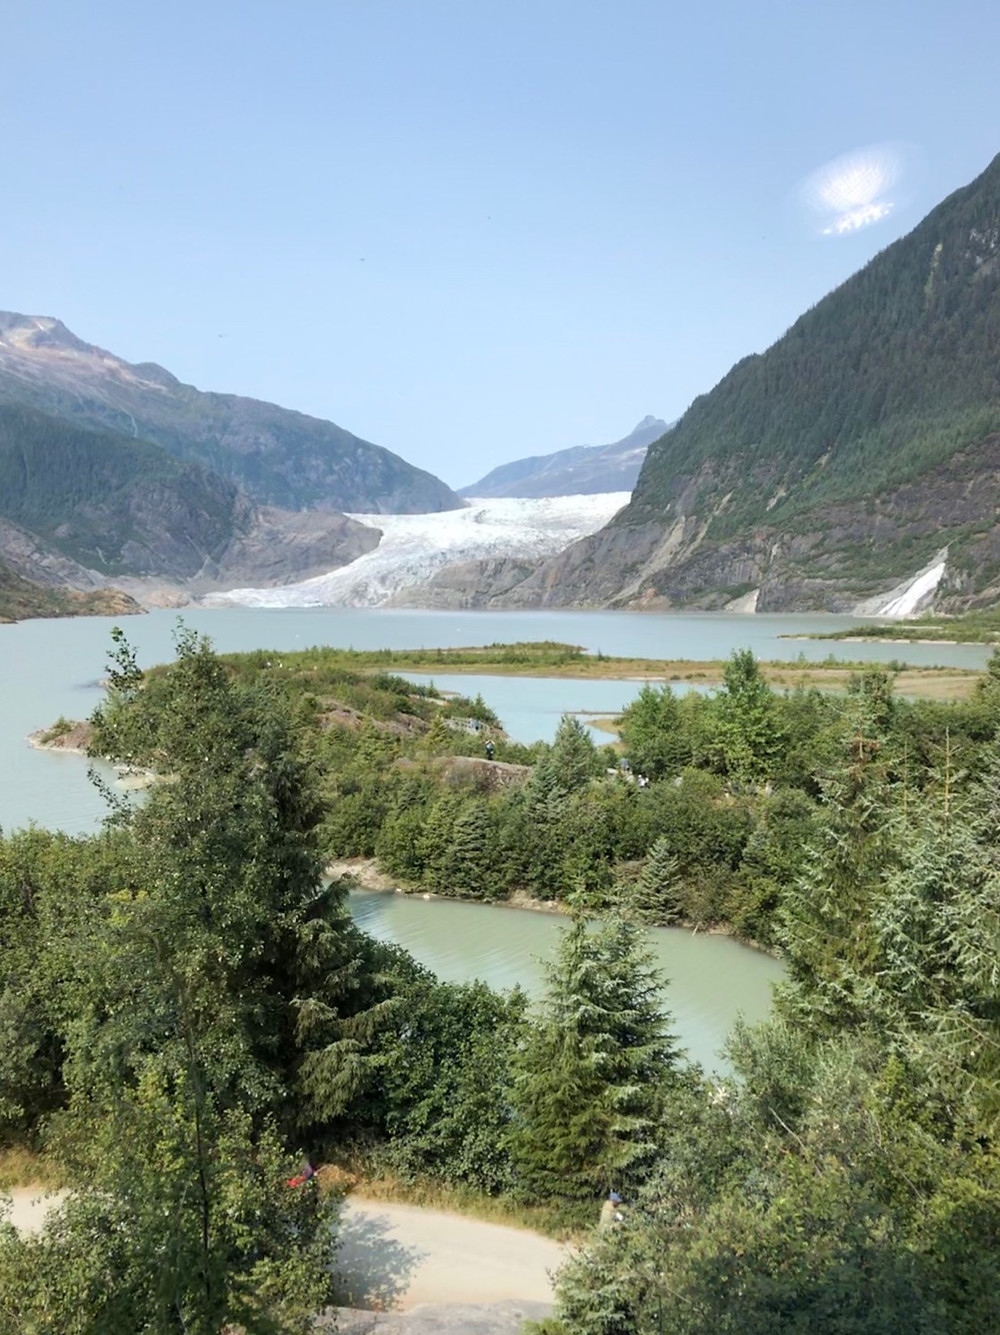 panoramic view of Mendenhall Glacier with trees in the foreground